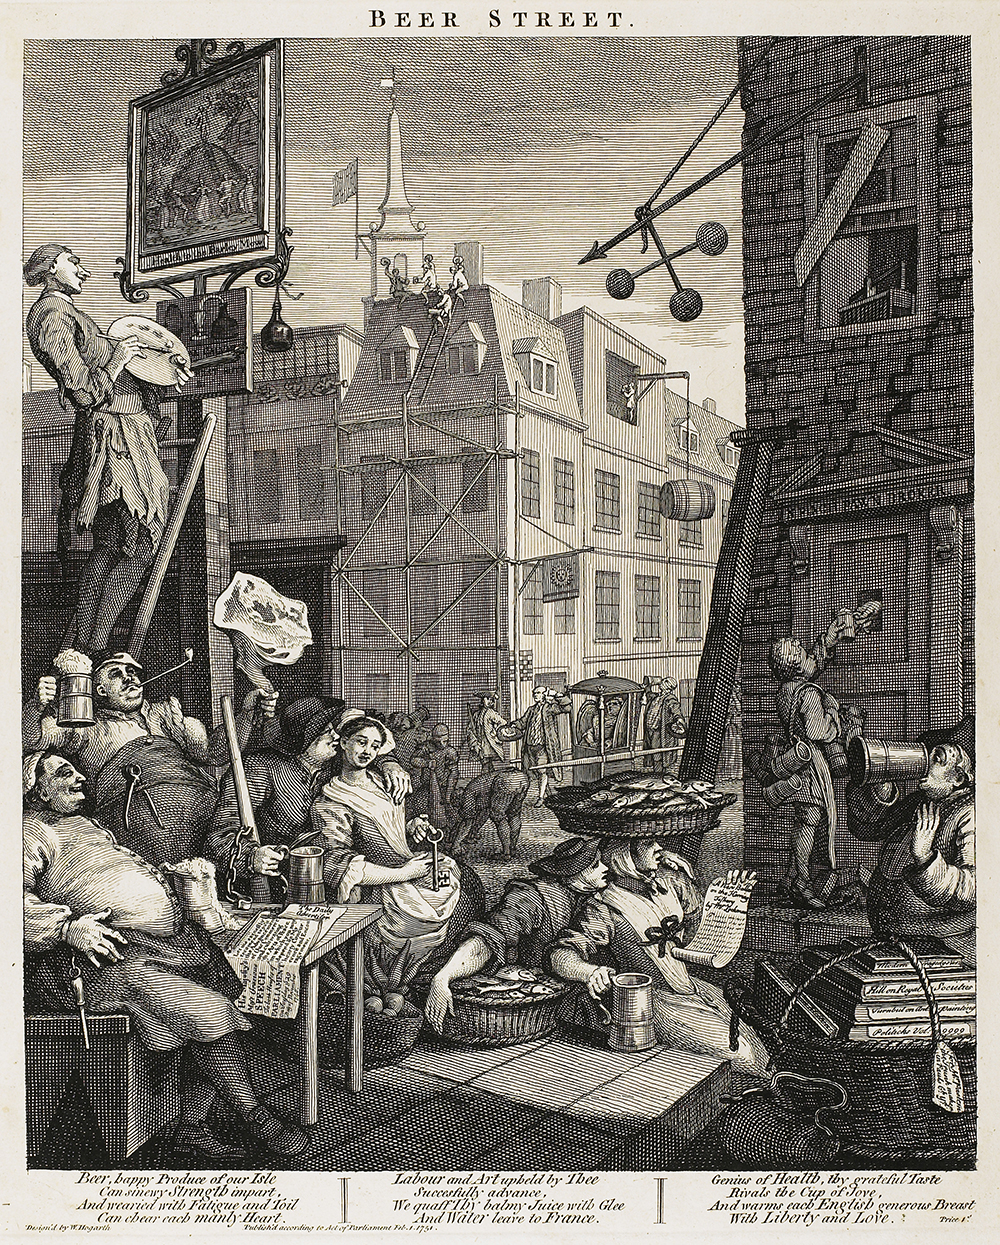 Black and white etching of an 18th century scene depicting the street life of villagers drinking beer and socializing.